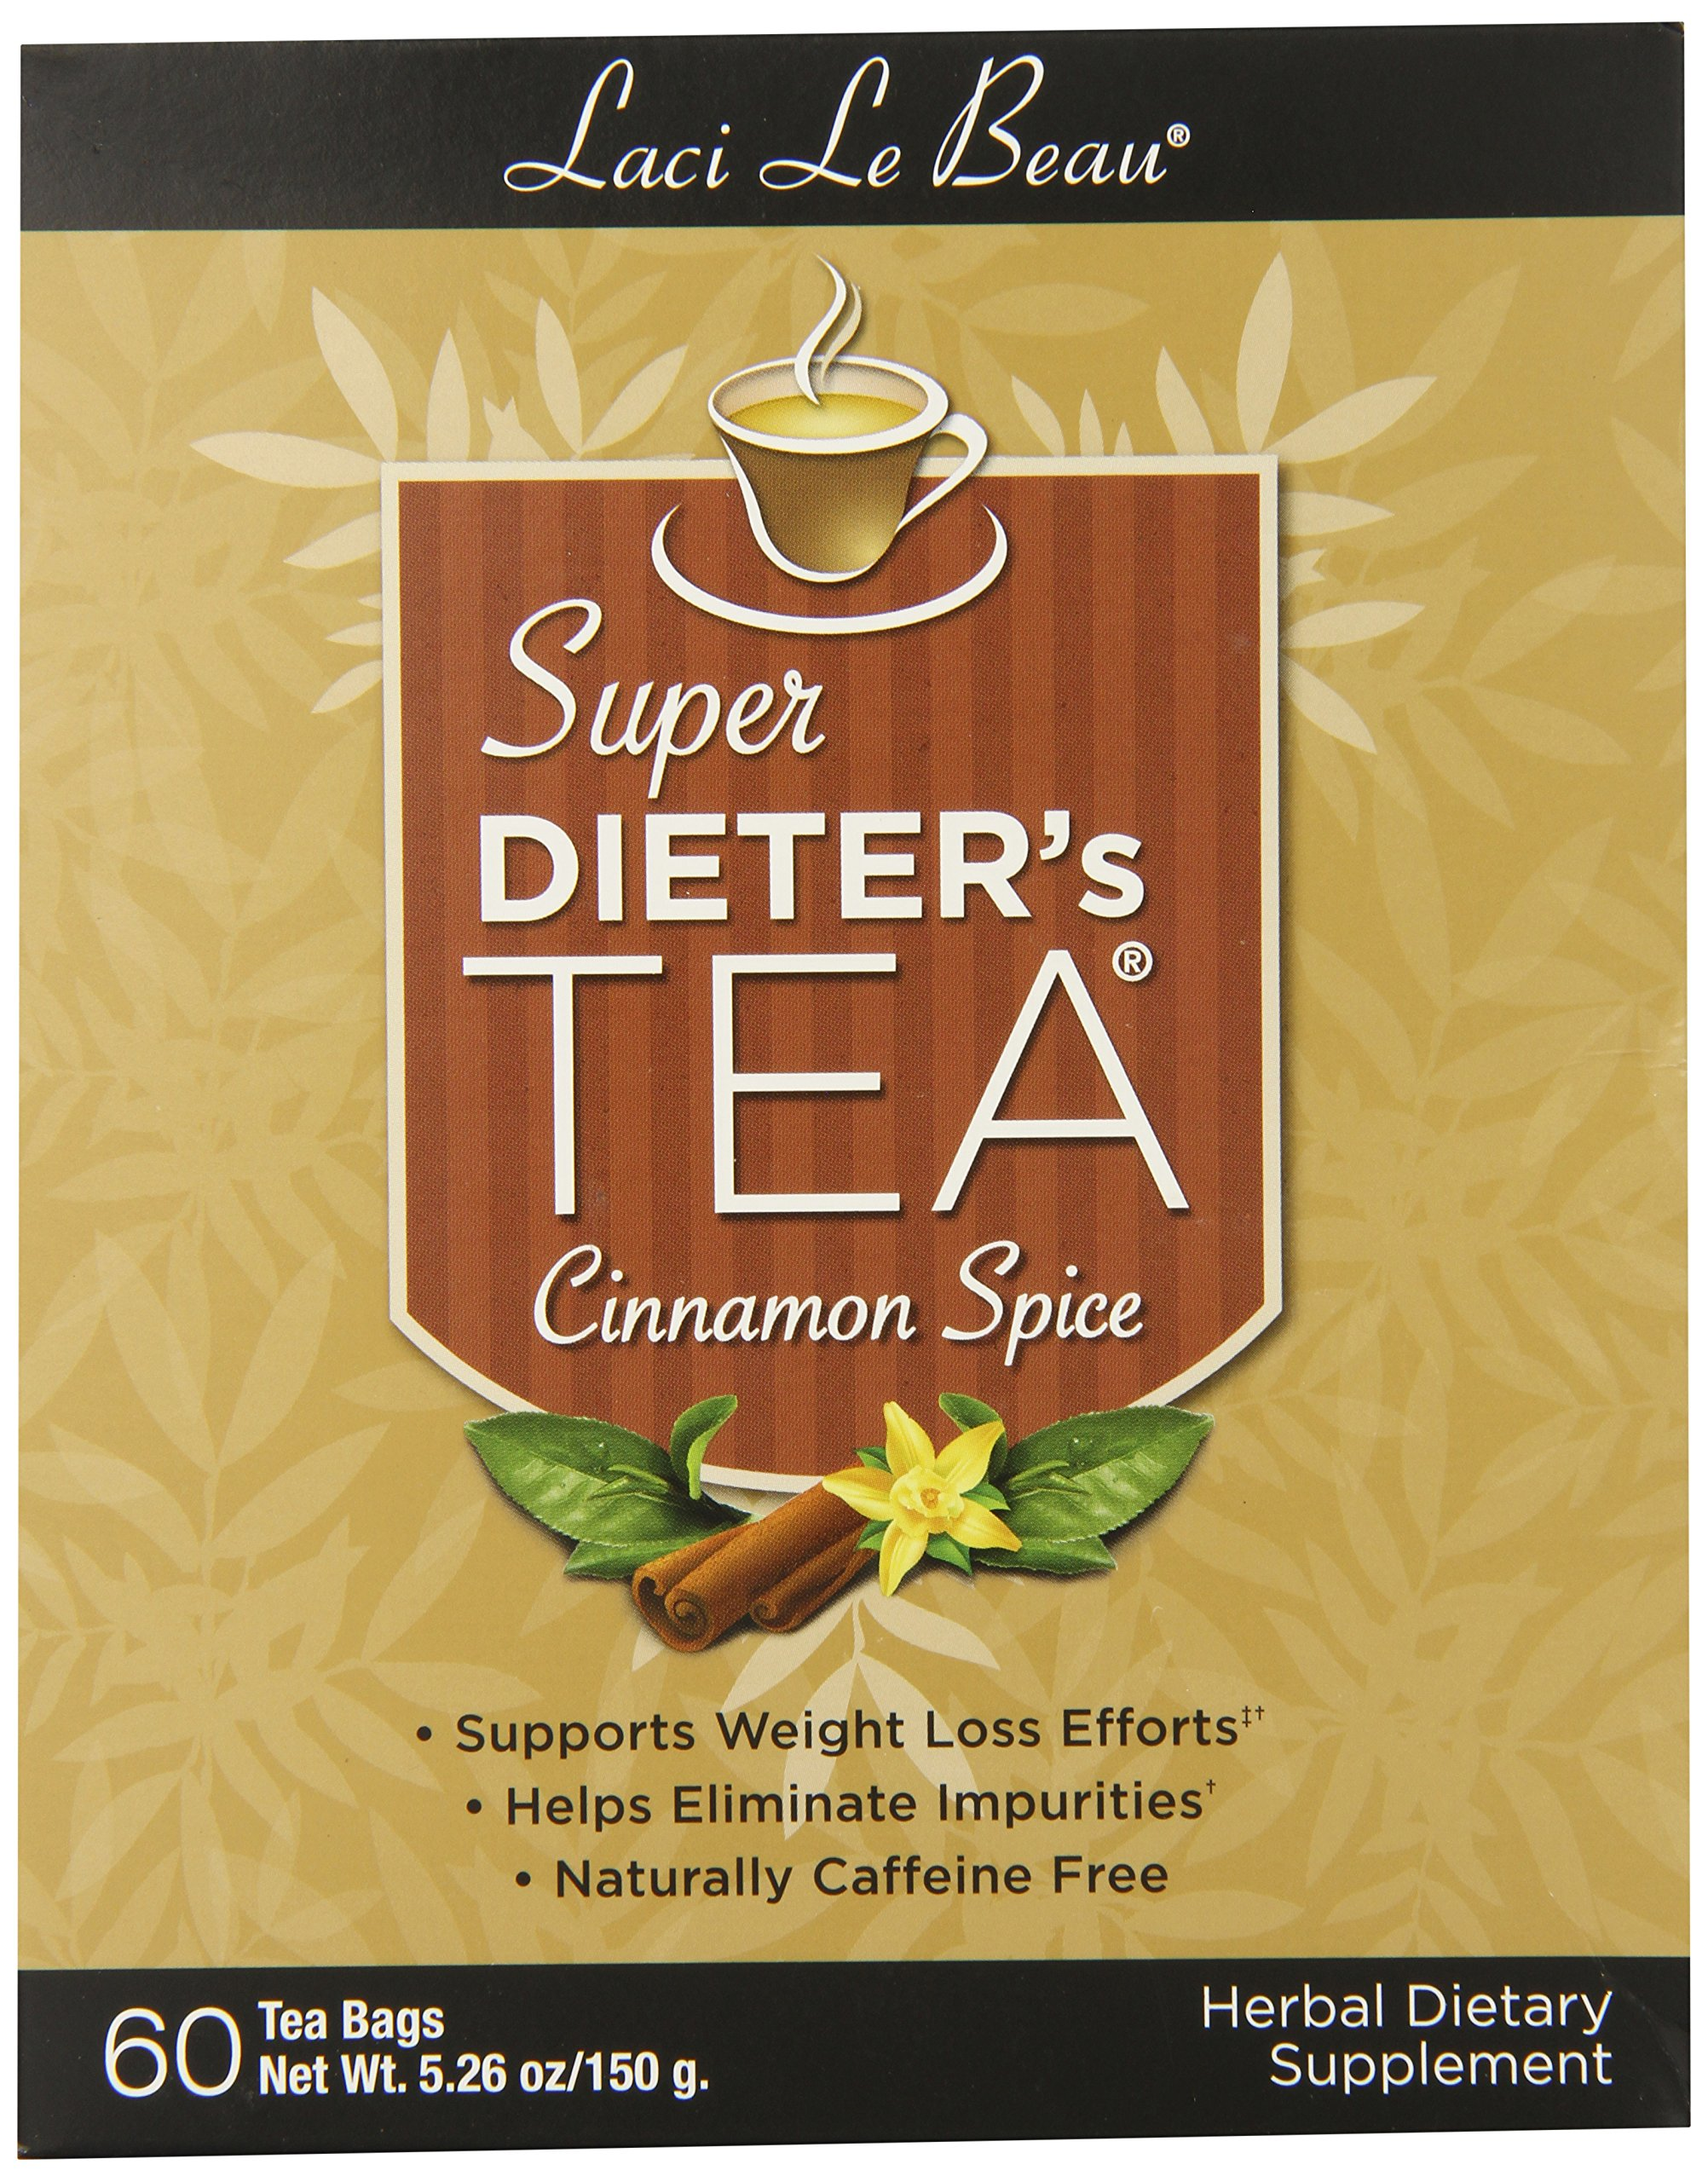 Laci Le Beau Super Dieter's Tea, Cinnamon Spice, 60 Count Box (Pack of 2)